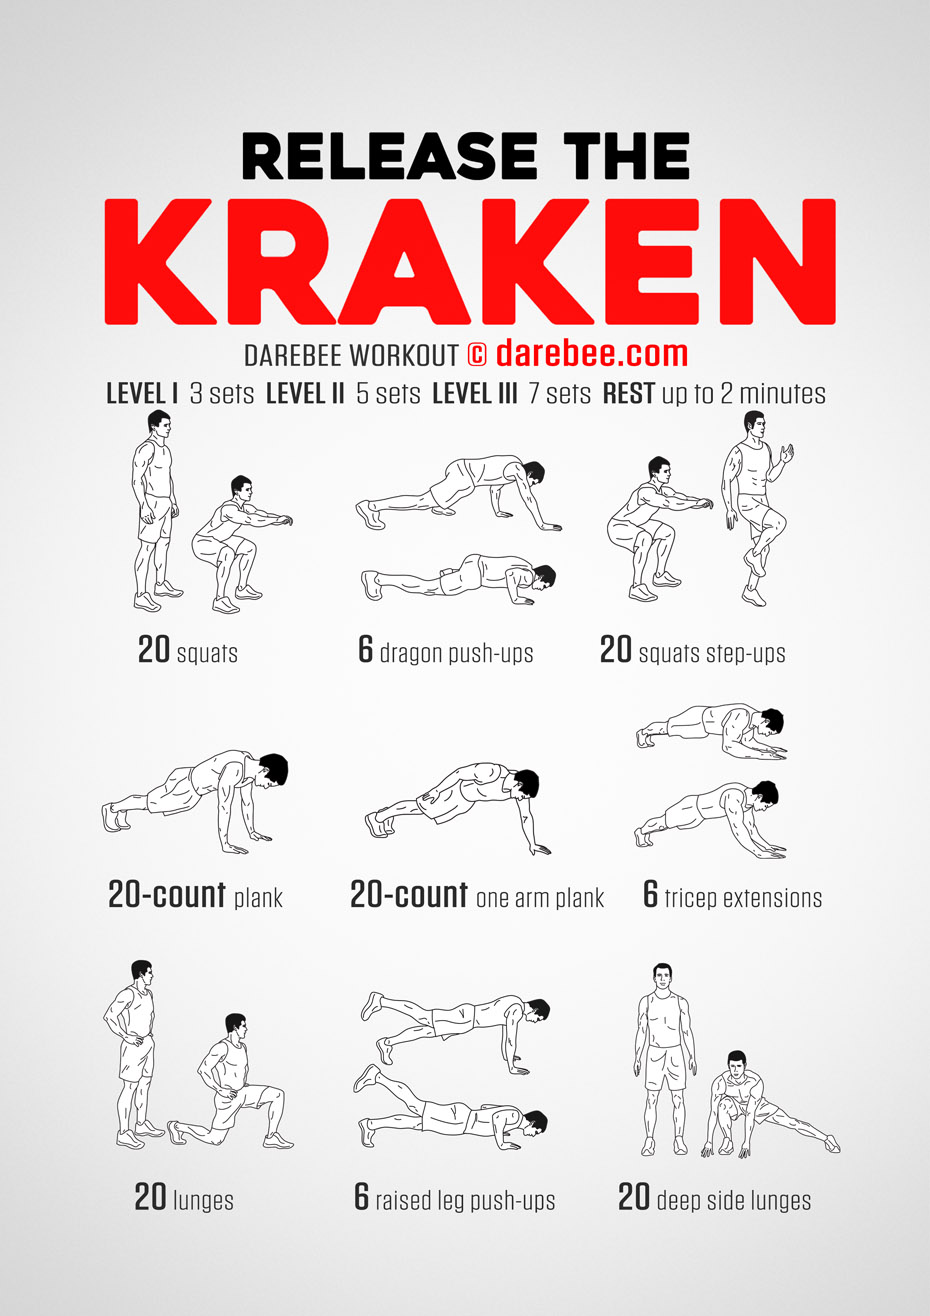 Libérez le Kraken - Le full-body workout de la mort